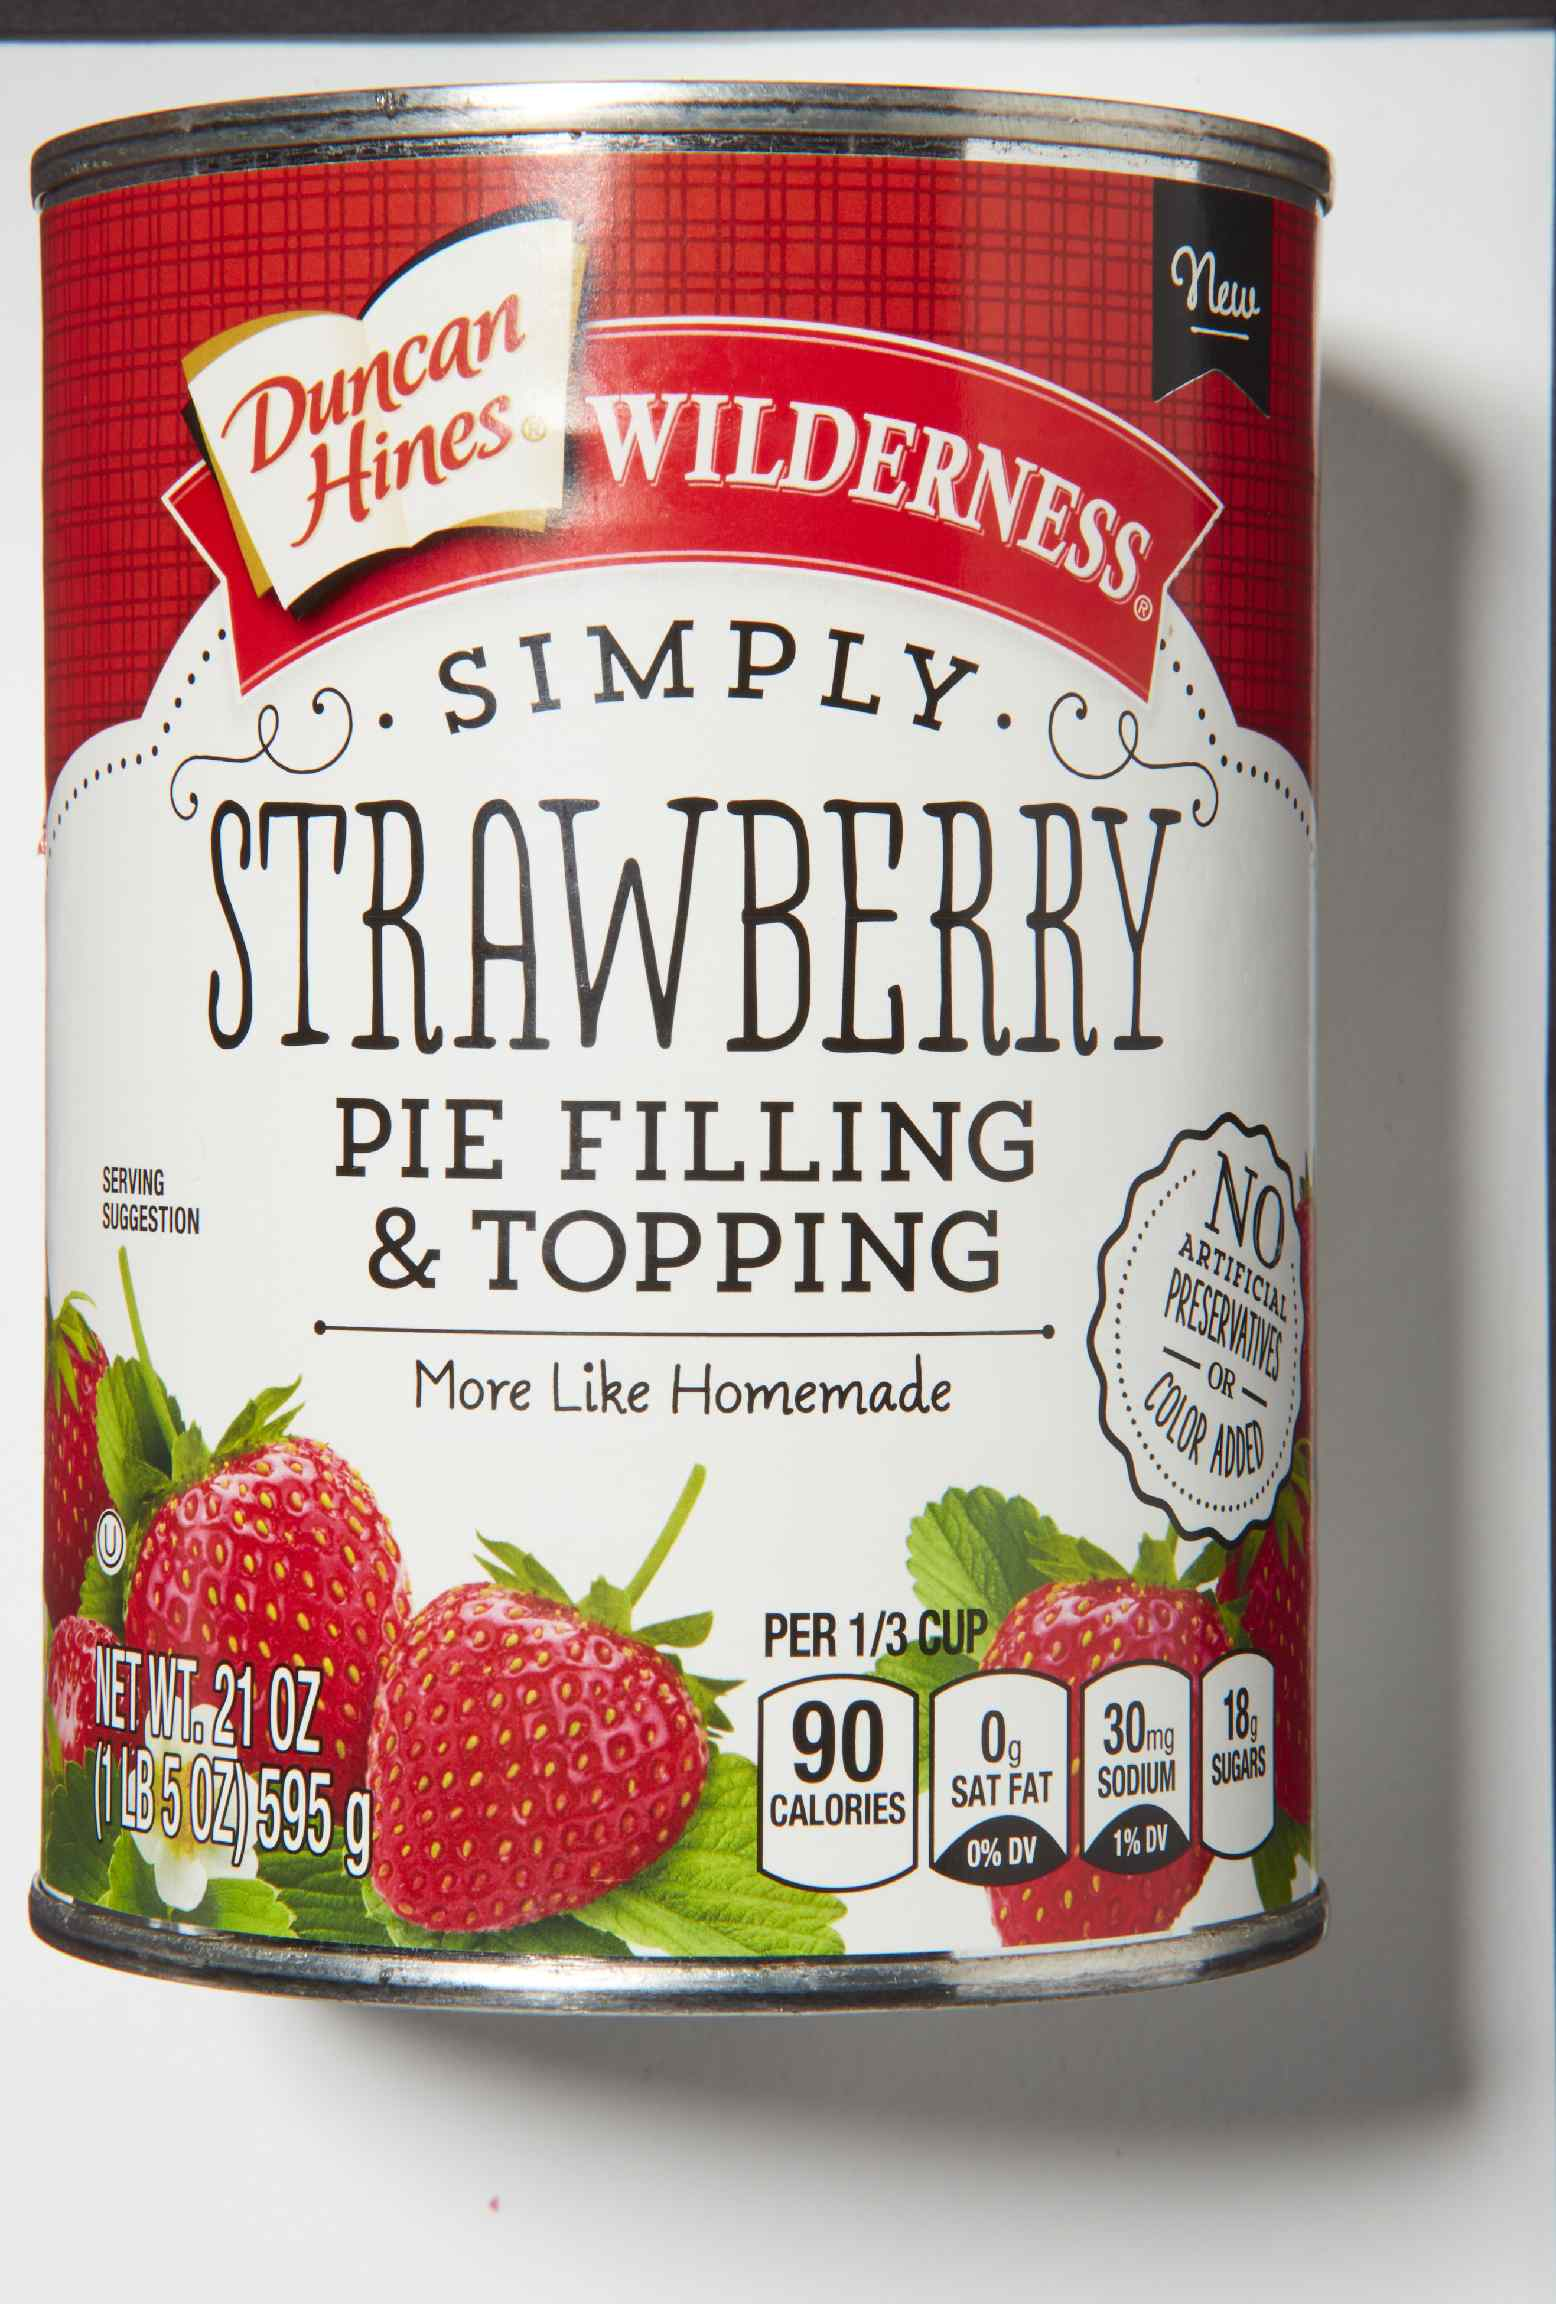 Duncan Hines Wilderness Simply Strawberry Pie Filling & Topping